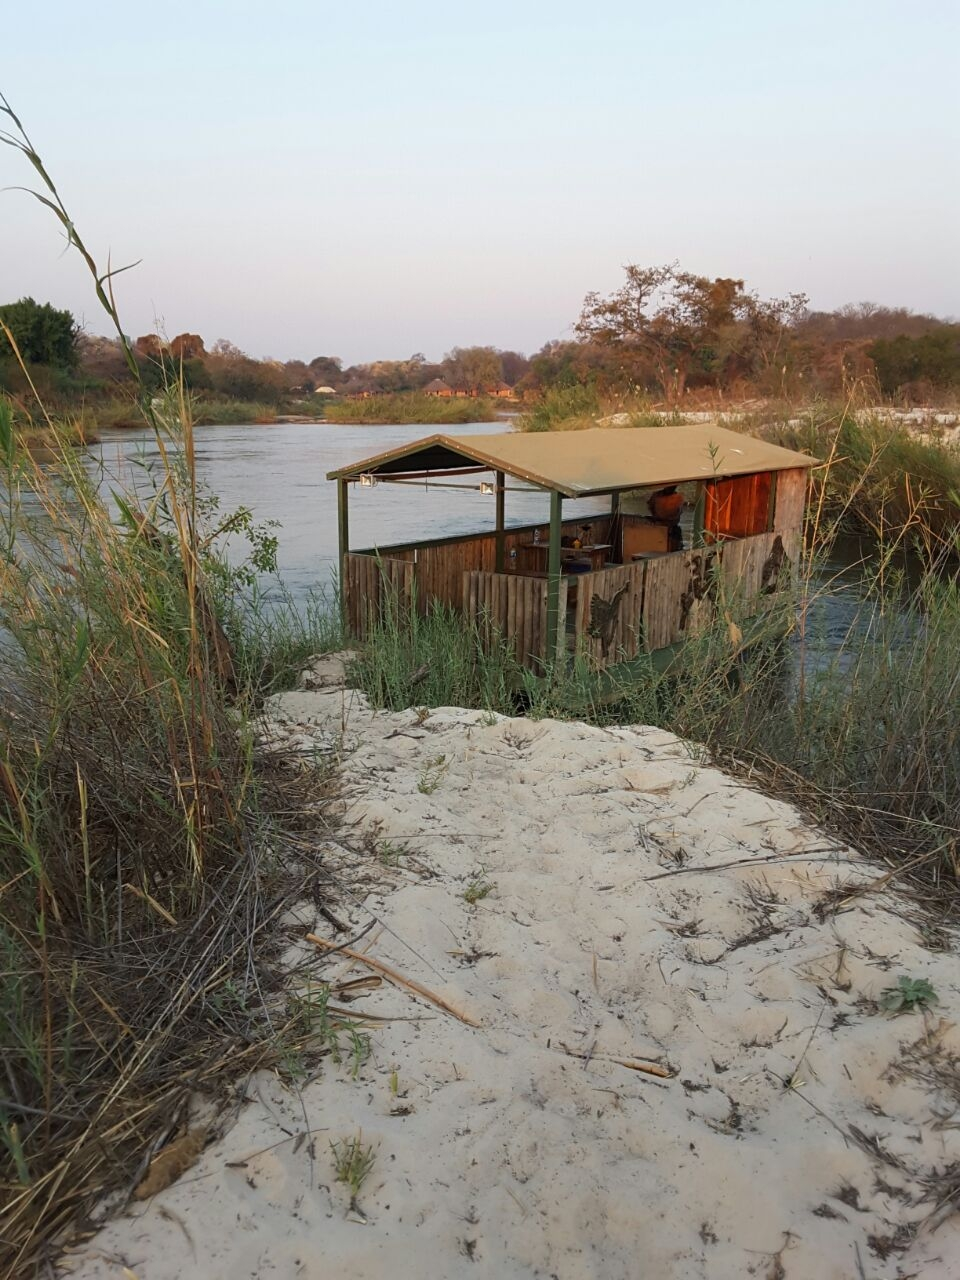 The boat that took me along Namibia's Kavango River.